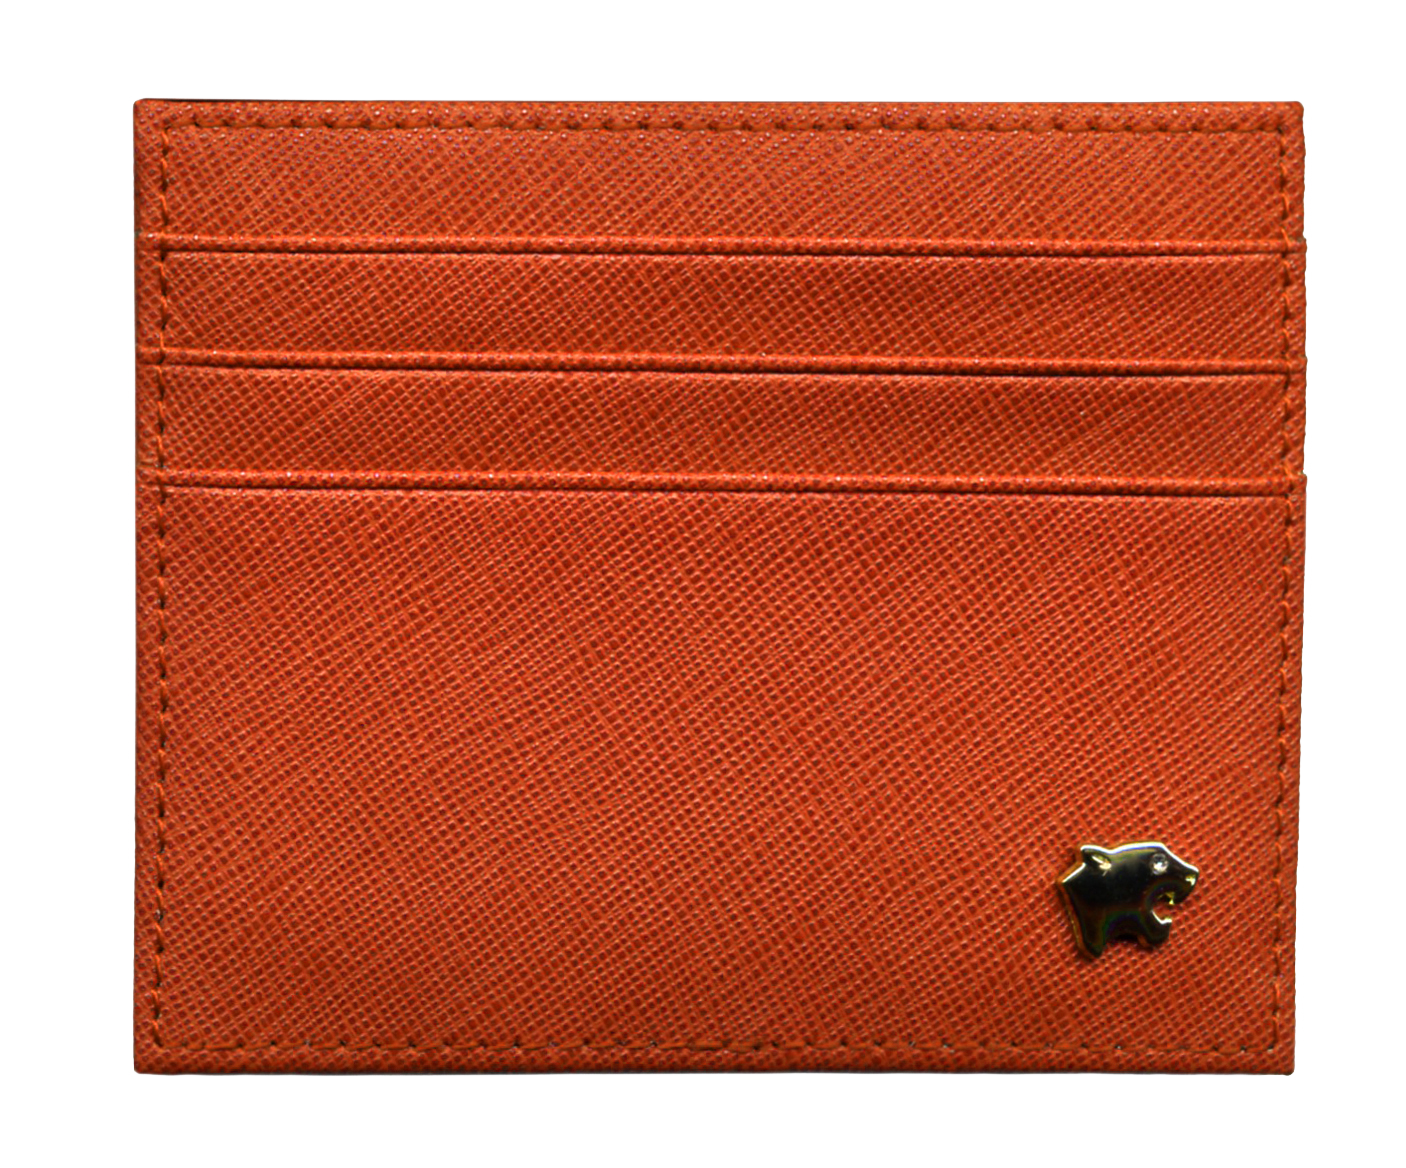 Vip Flap Saffiano Orange